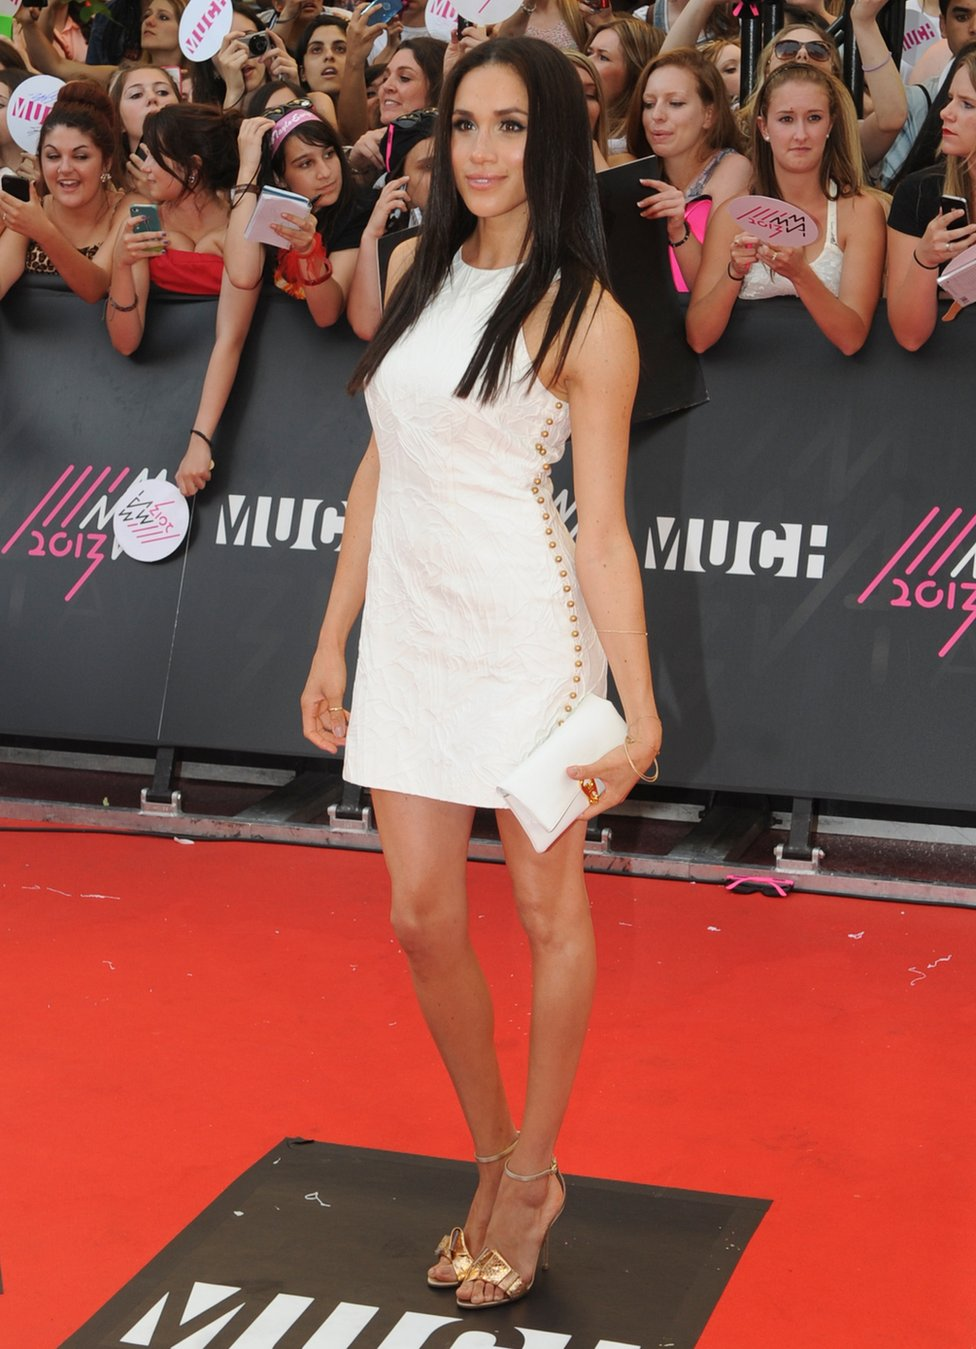 Megan Markle arrives on the red carpet at the 2013 MuchMusic Video Awards in Toronto